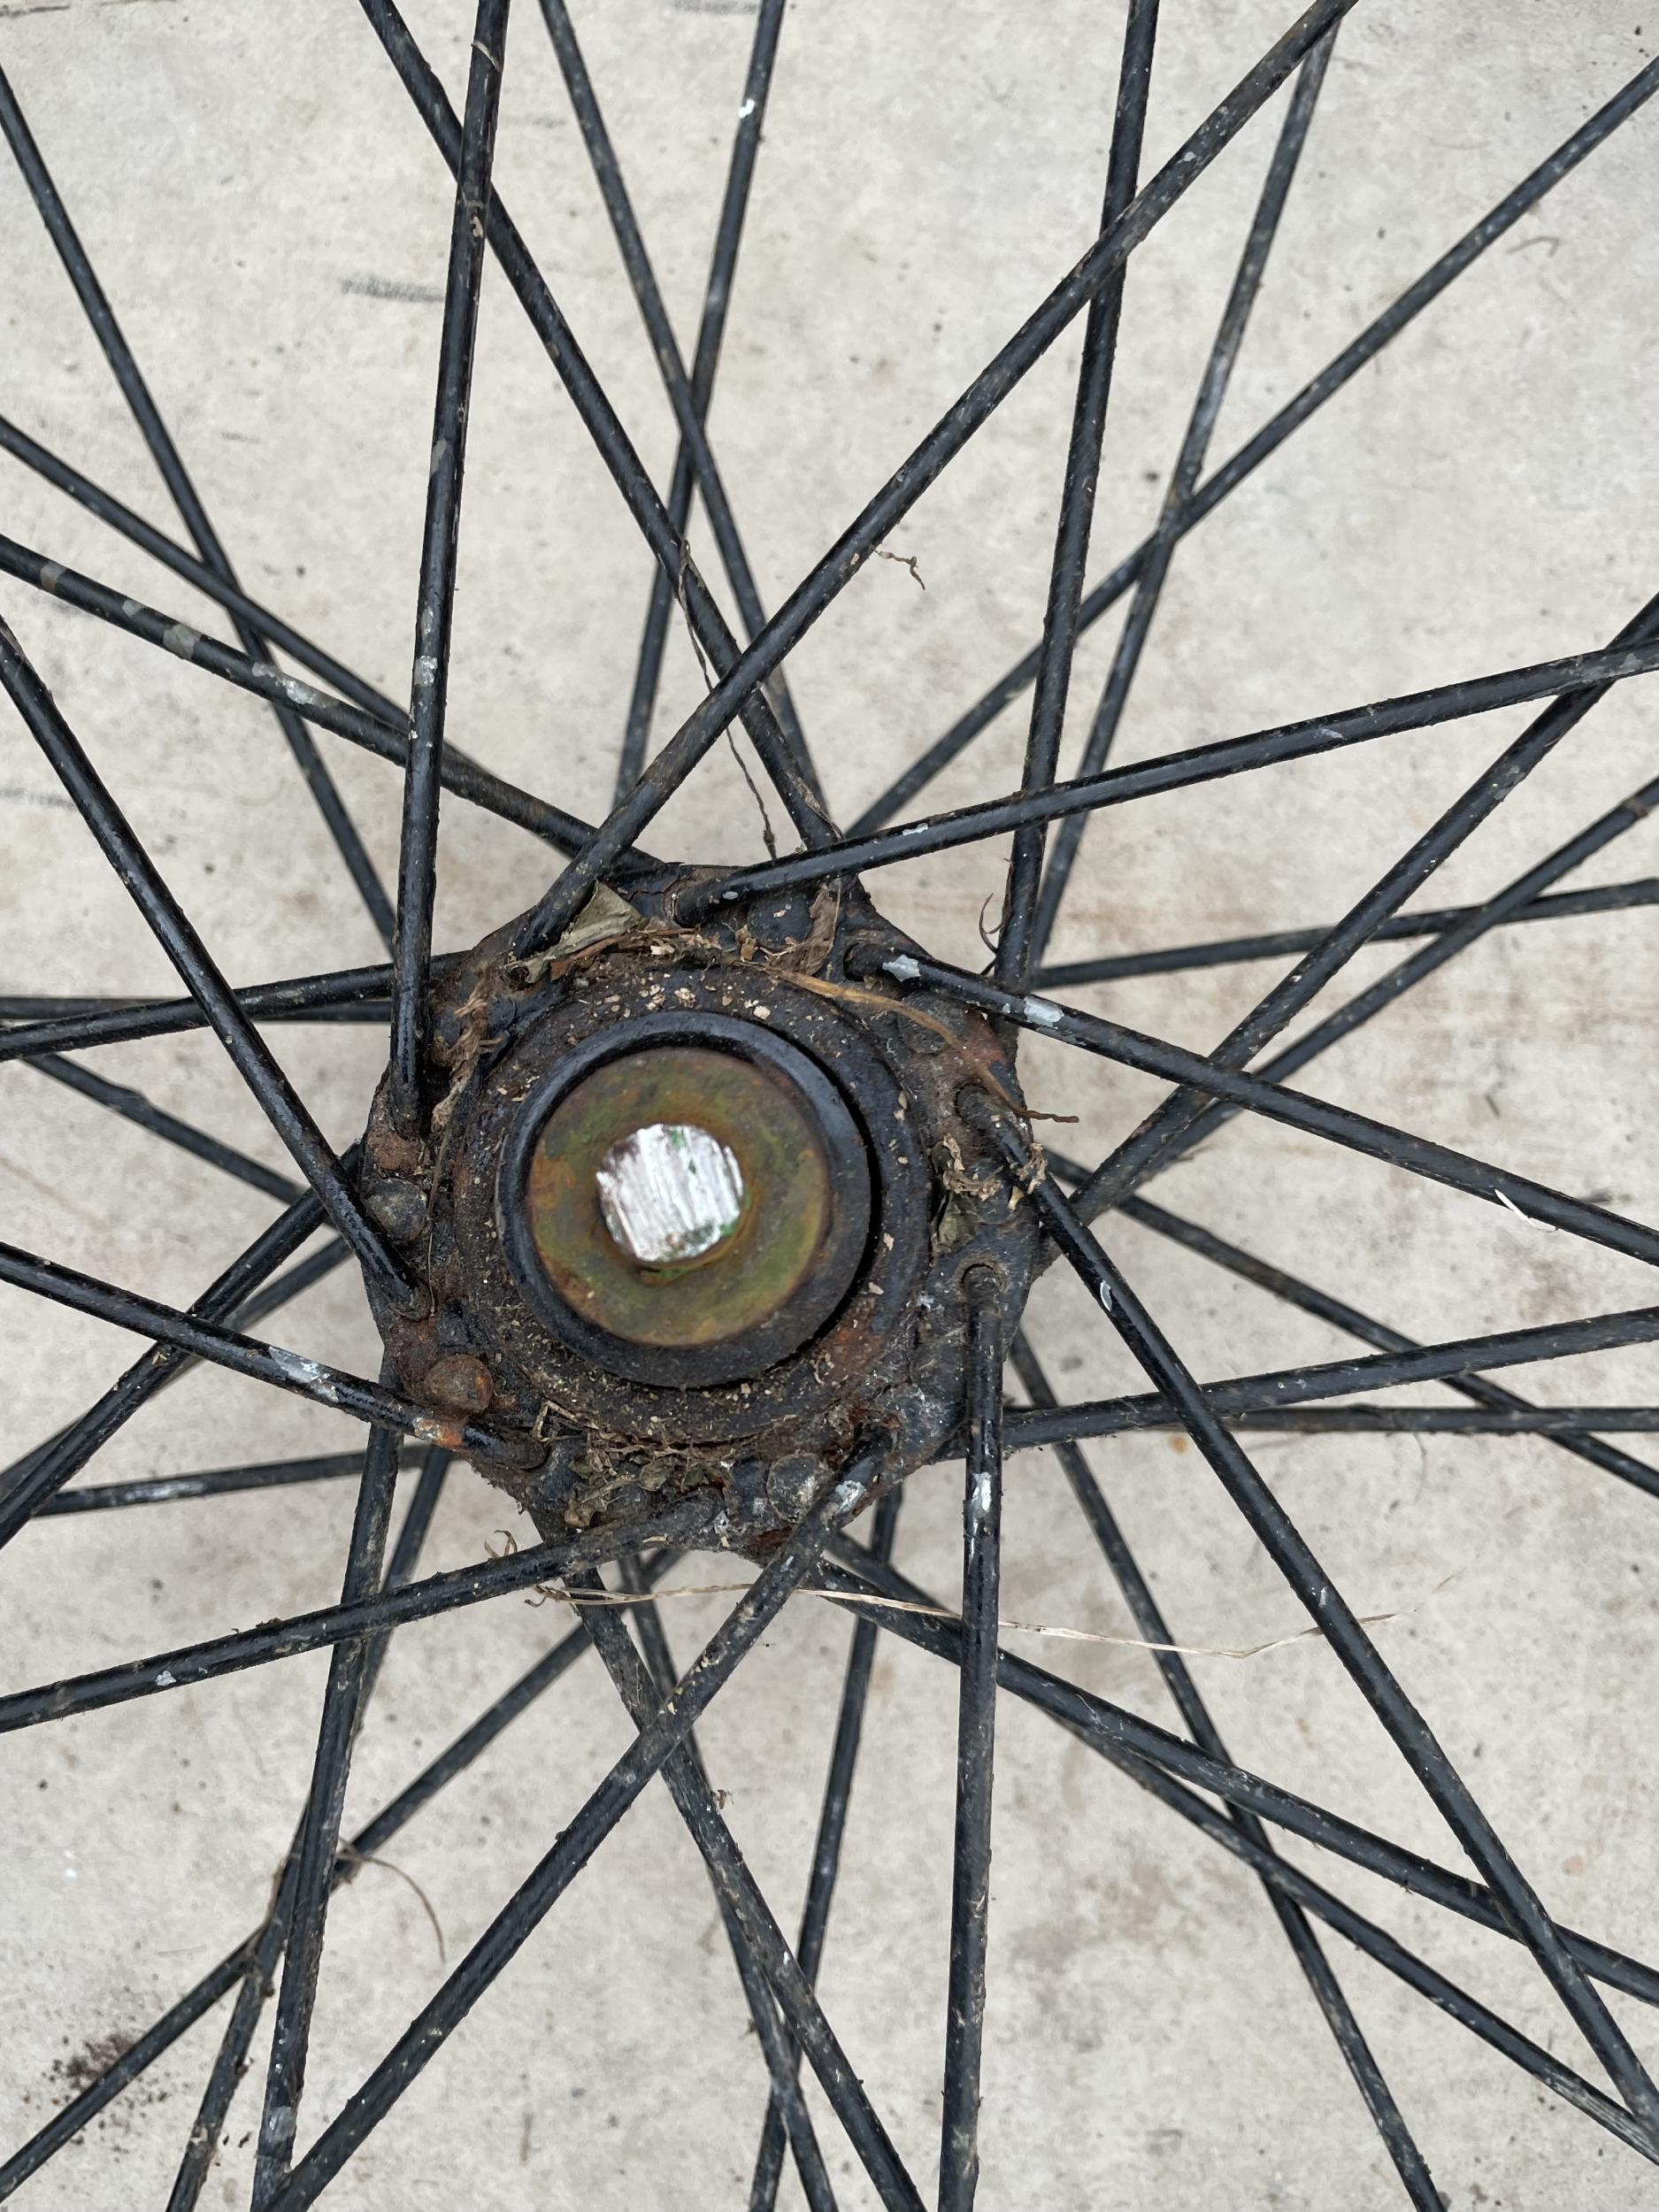 A LARGE THICK TREAD SIDE CAR WHEEL - Image 2 of 2